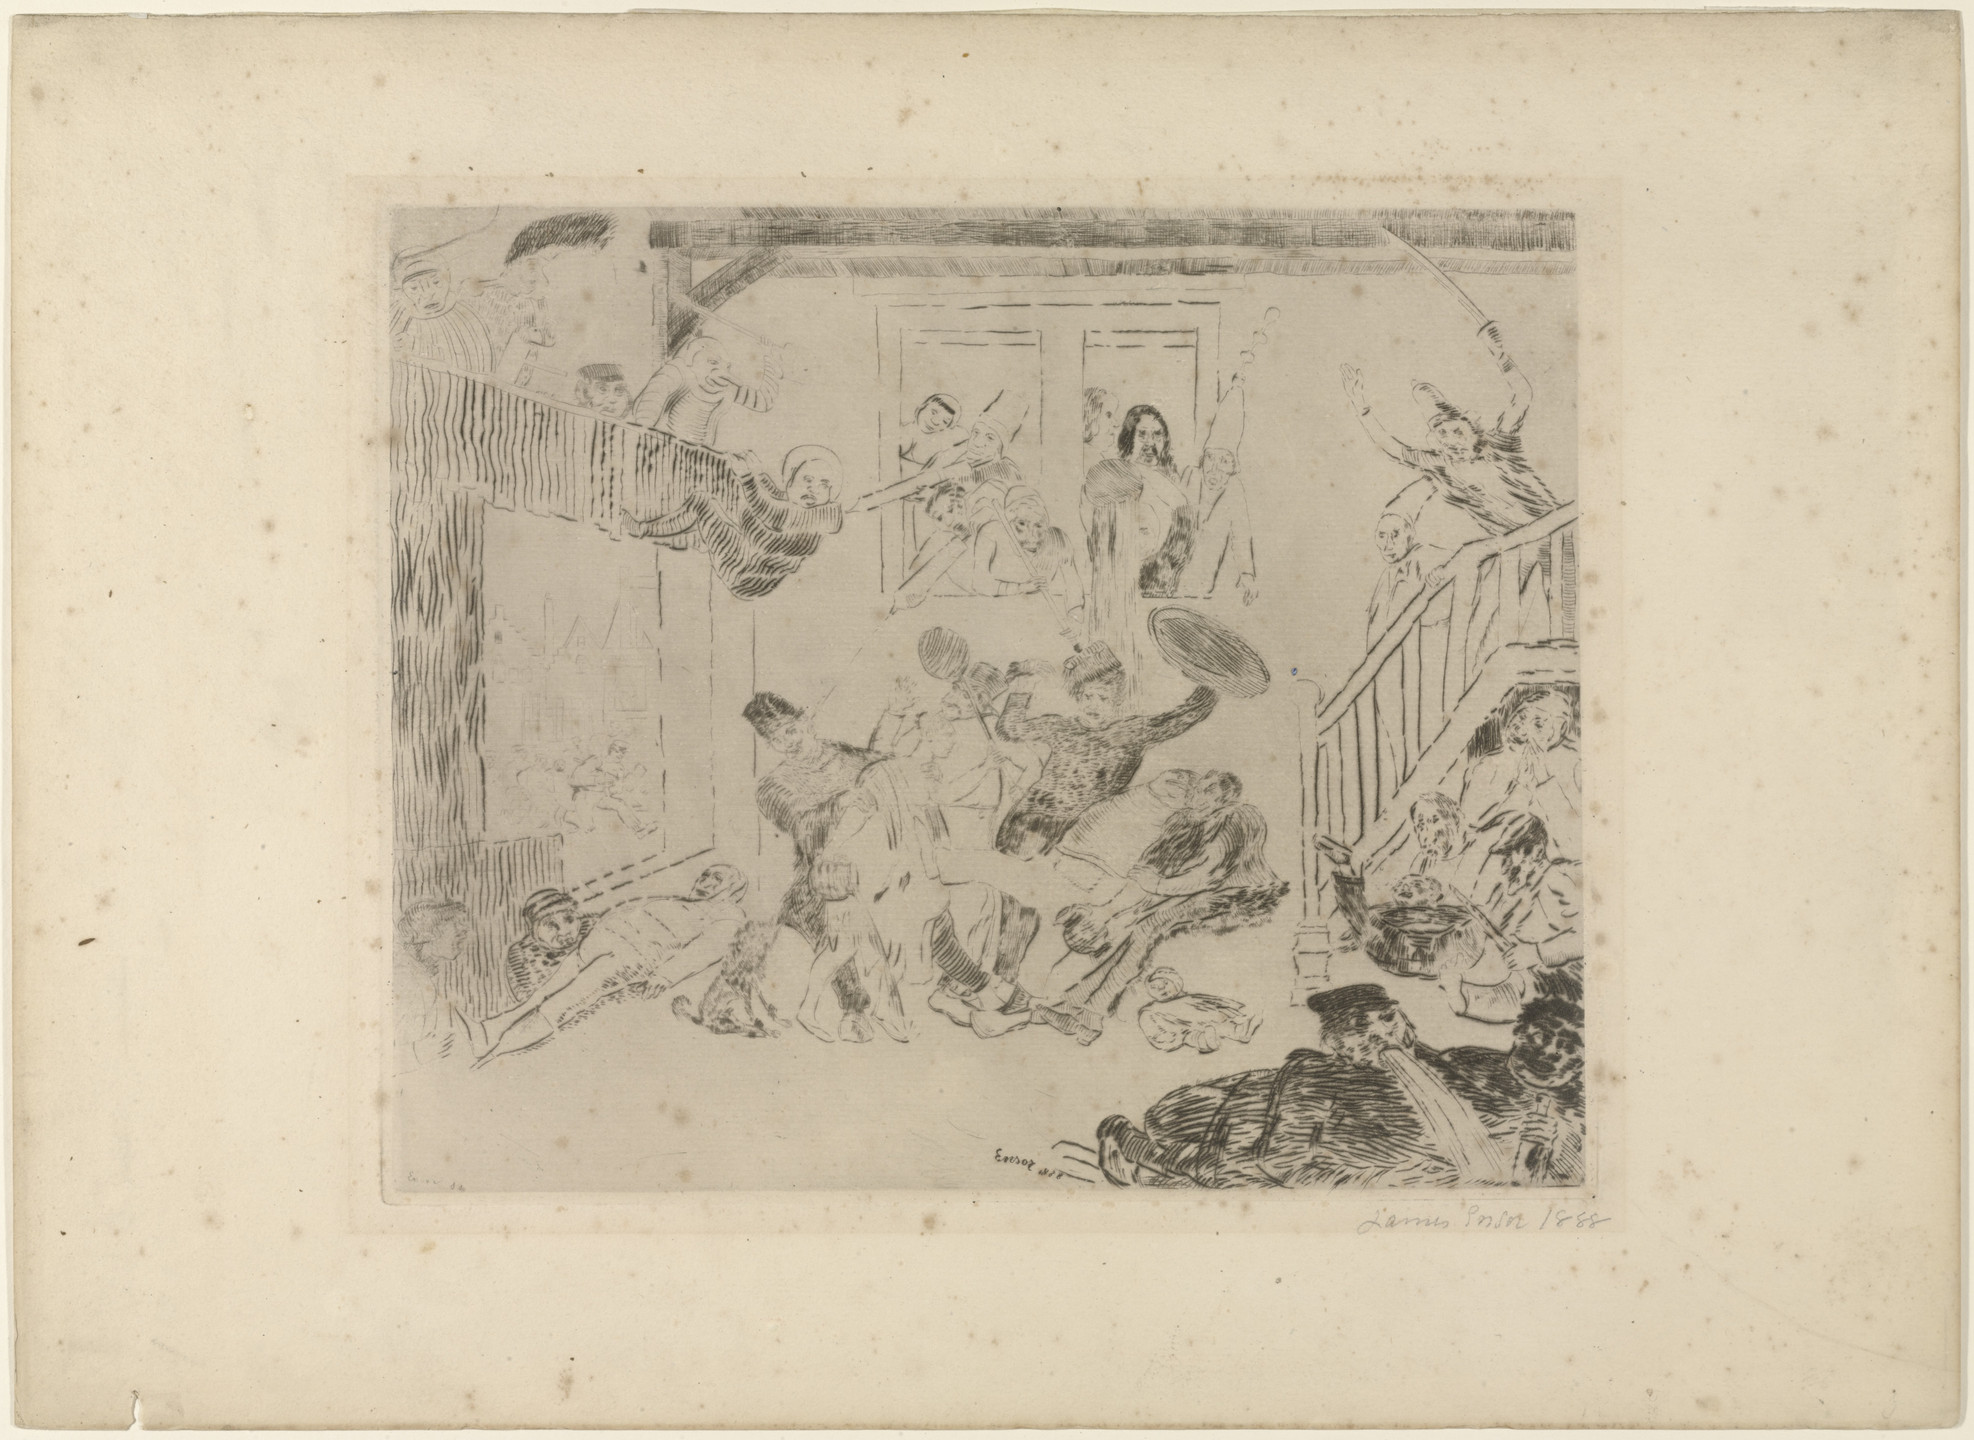 James Ensor. Combat of the Rascals Désir and Rissolé. 1888